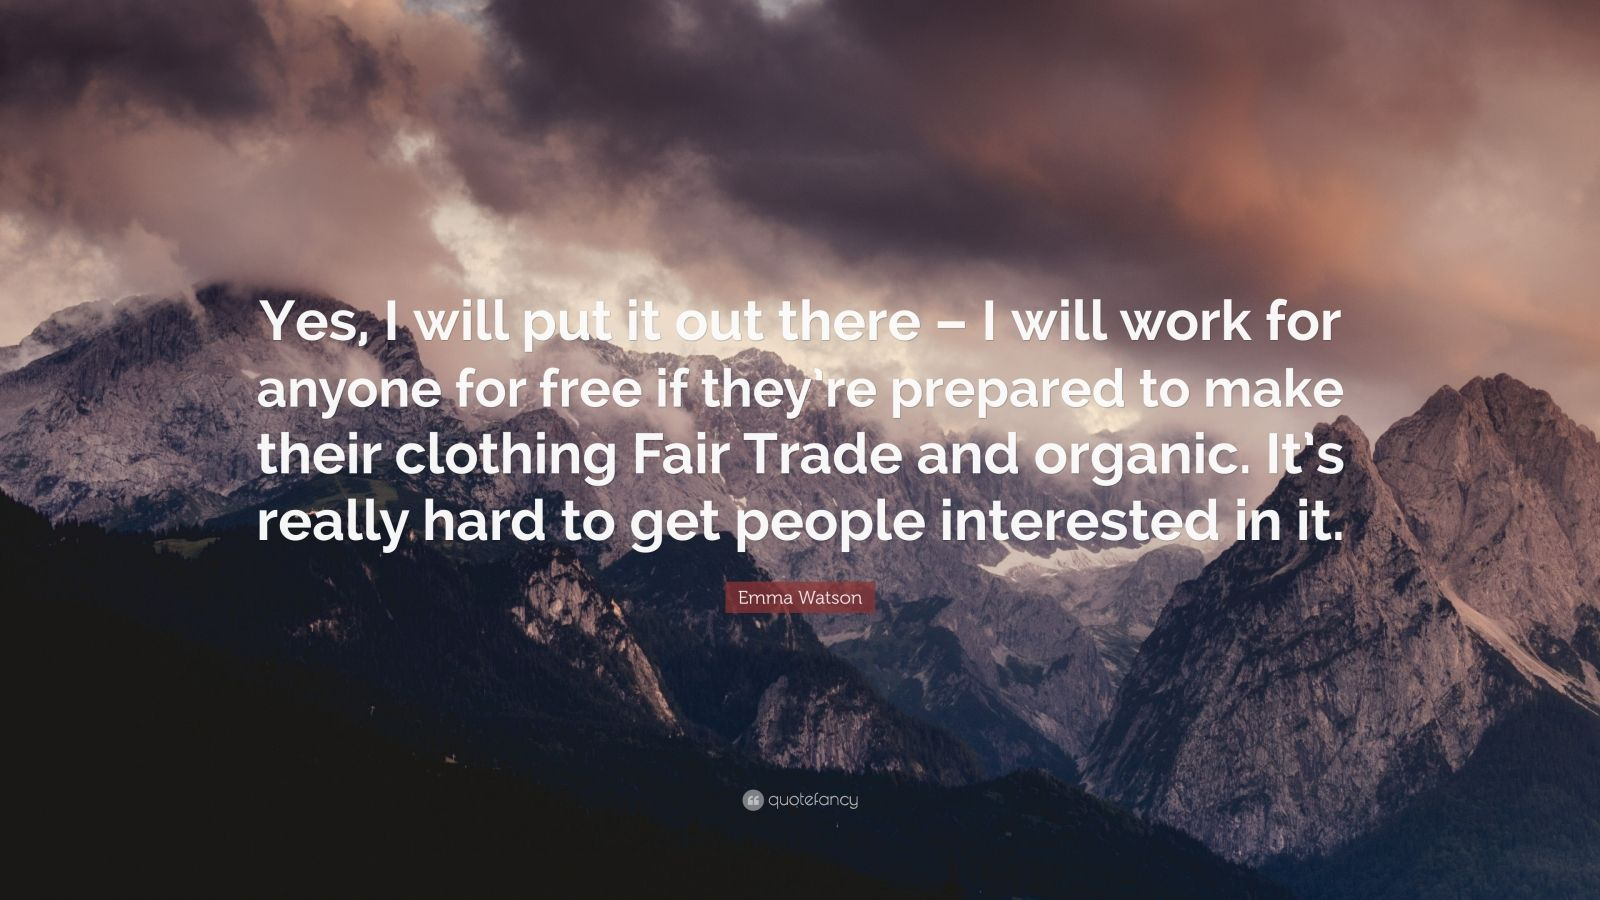 """Emma Watson Quote: """"Yes, I will put it out there – I will work for anyone for free if they're prepared to make their clothing Fair Trade and organic. It's really hard to get people interested in it."""""""